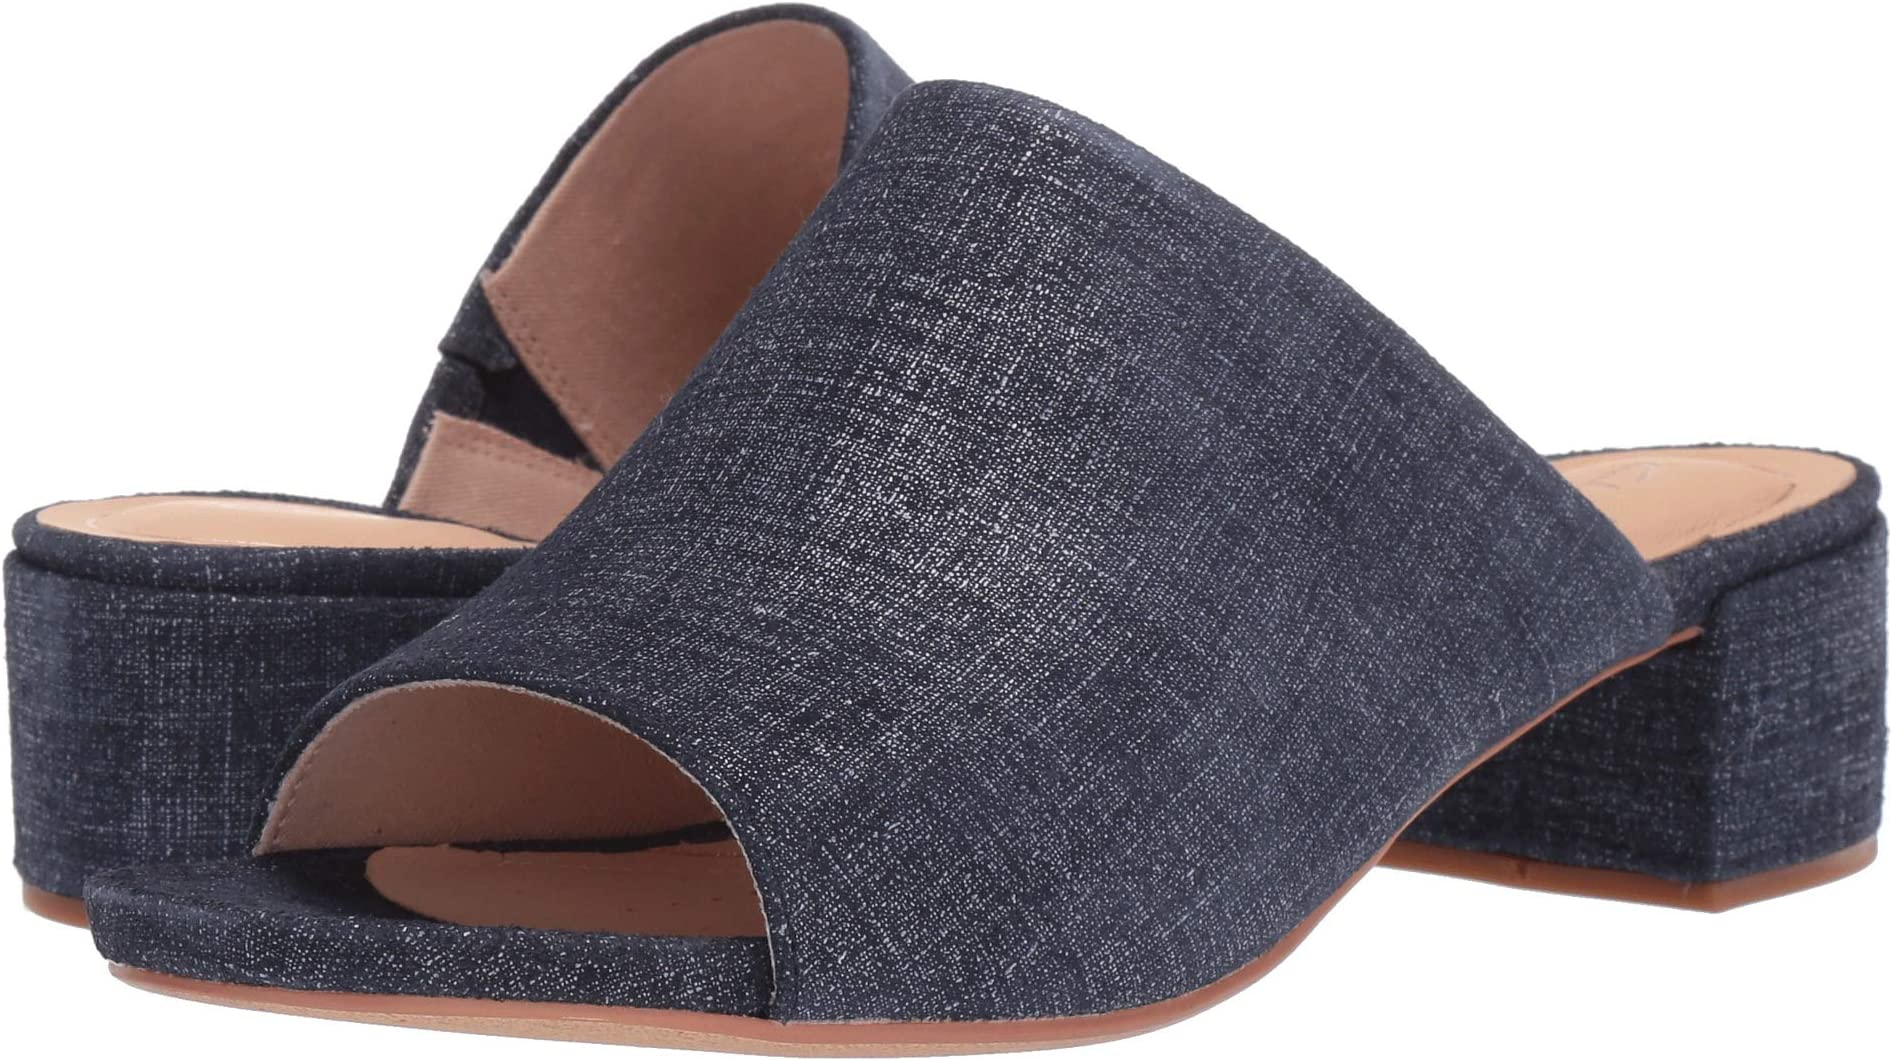 21d1d87f531 Clarks Shoes, Boots, Loafers, Sneakers & Heels | Zappos.com